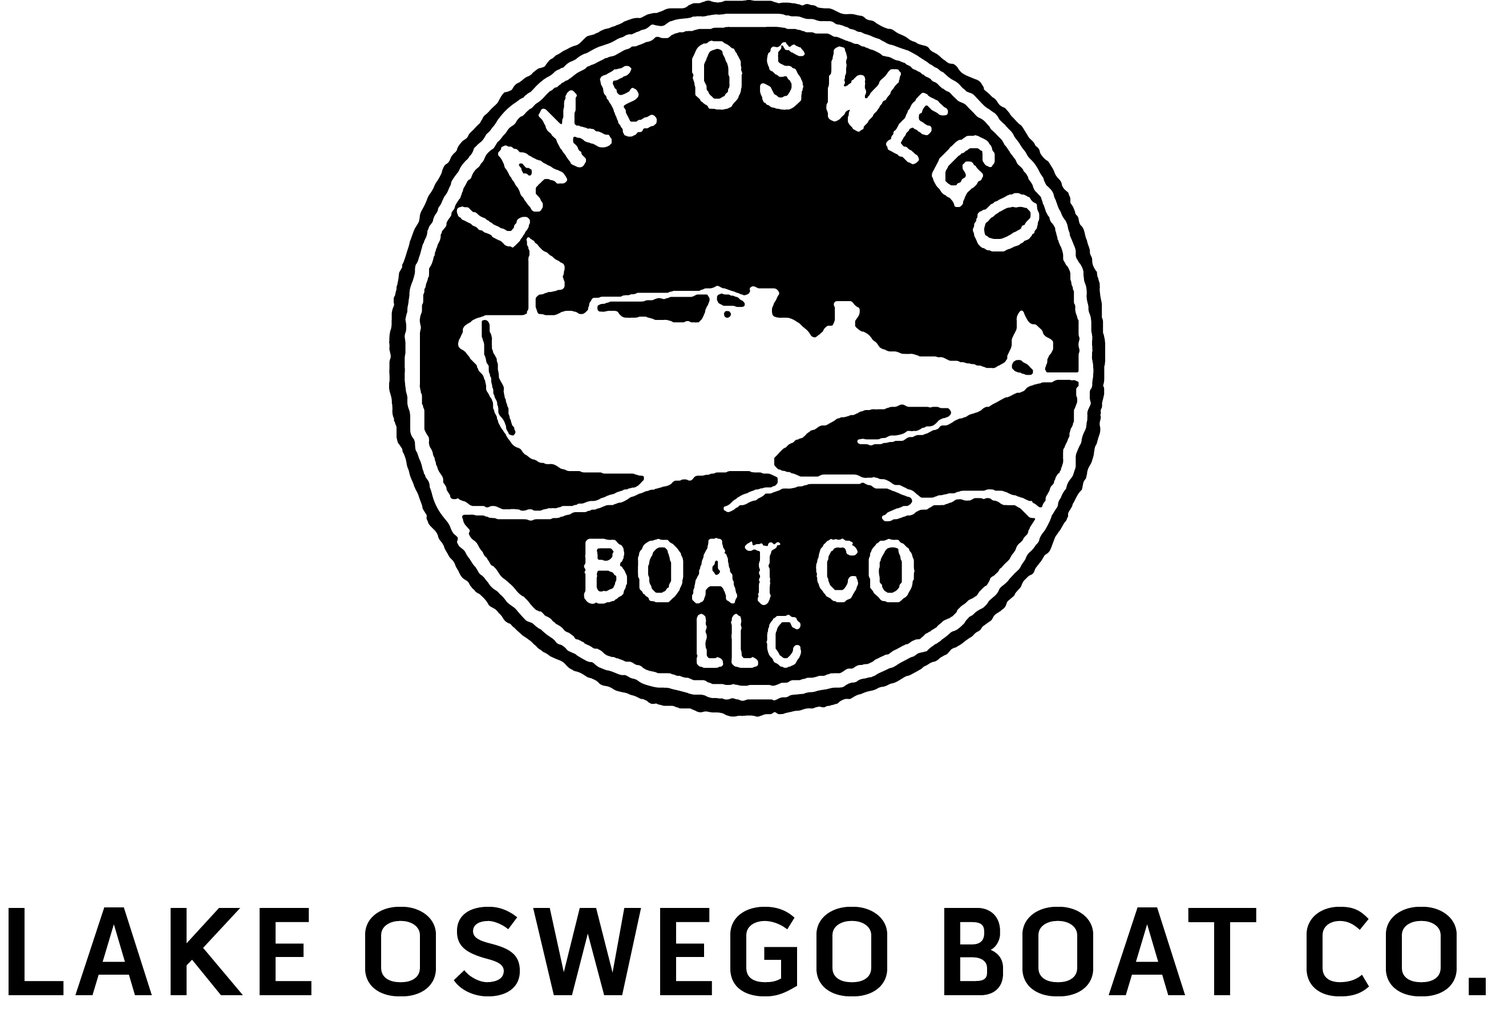 LAKE OSWEGO BOAT CO.